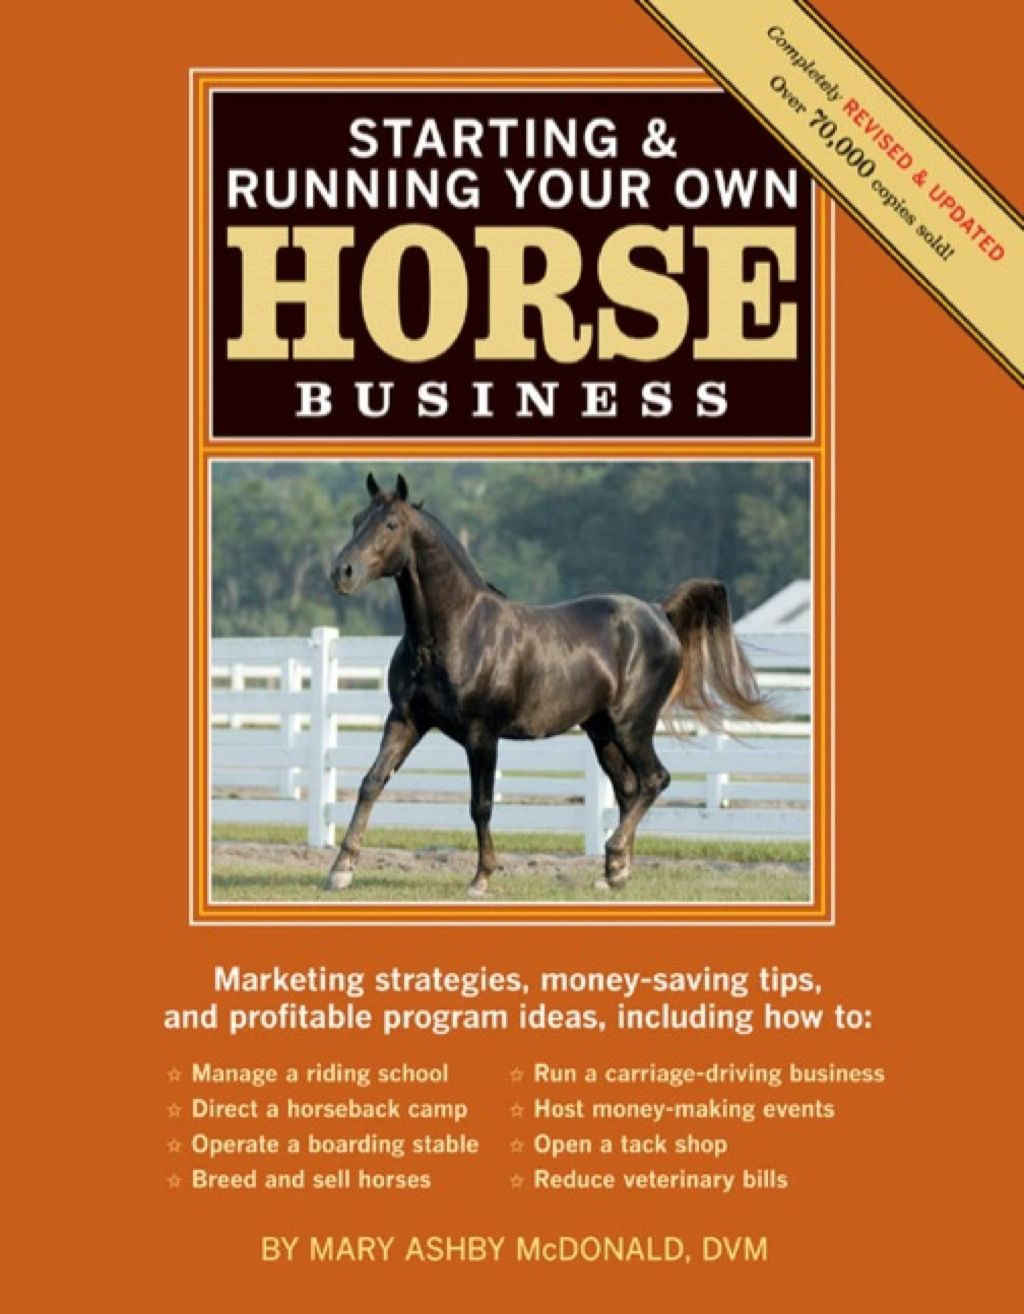 Starting & Running Your Own Horse Business 2nd Edition